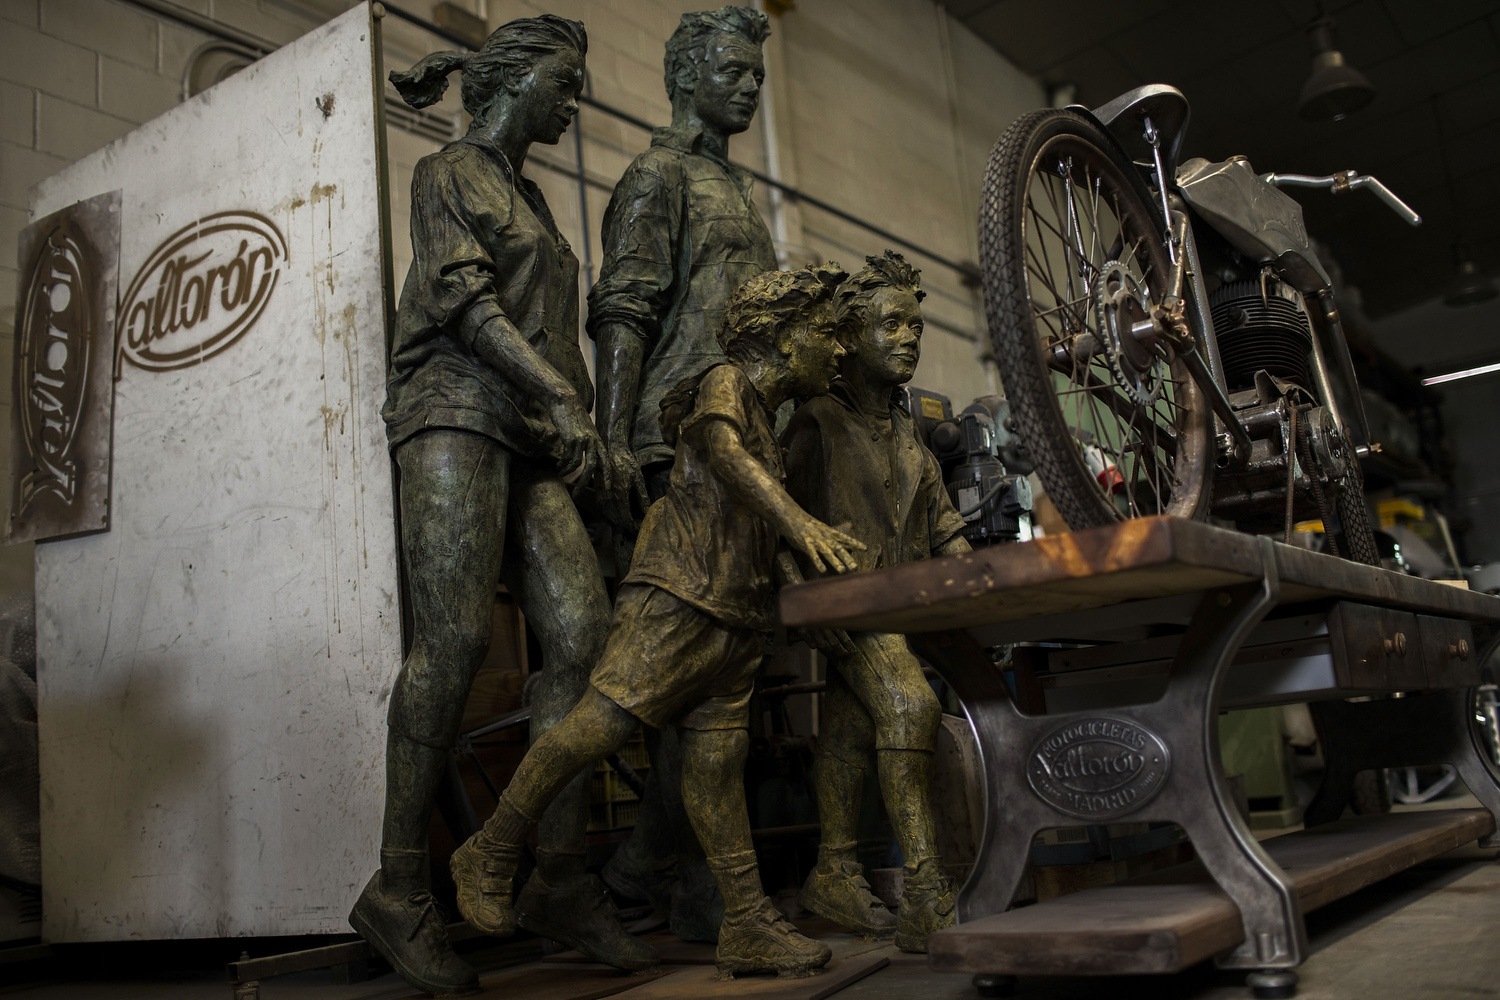 "Bronze sculptures  are displayed behind "" Gutdman "", and unfinished 235cc  Mv Deva Agusta   motorbike   customization  at Valtorón's workshop garage on July 21, 2014 in Valdetorres del Jarama, Spain. Brothers Carlos and Pablo Delgado are cast sculptors who invest part of their time as  Valtorón Sculptured Motorcycles . On their foundry they desing and bring to life motorbike's bodyworks and tanks handmade by steel pieces recycled from scrapped  motorcycles . Cast sculptors, a community trader and a musician have something in common: they have made the passion of customizing motorbikes their own business. Valtoron Sculptured Motorcycles, Café Racer Obsession and El Solitario Motorcycles are the dreams-come-true of the Delgado Brothers, Federico Ruiz and David Borrás."